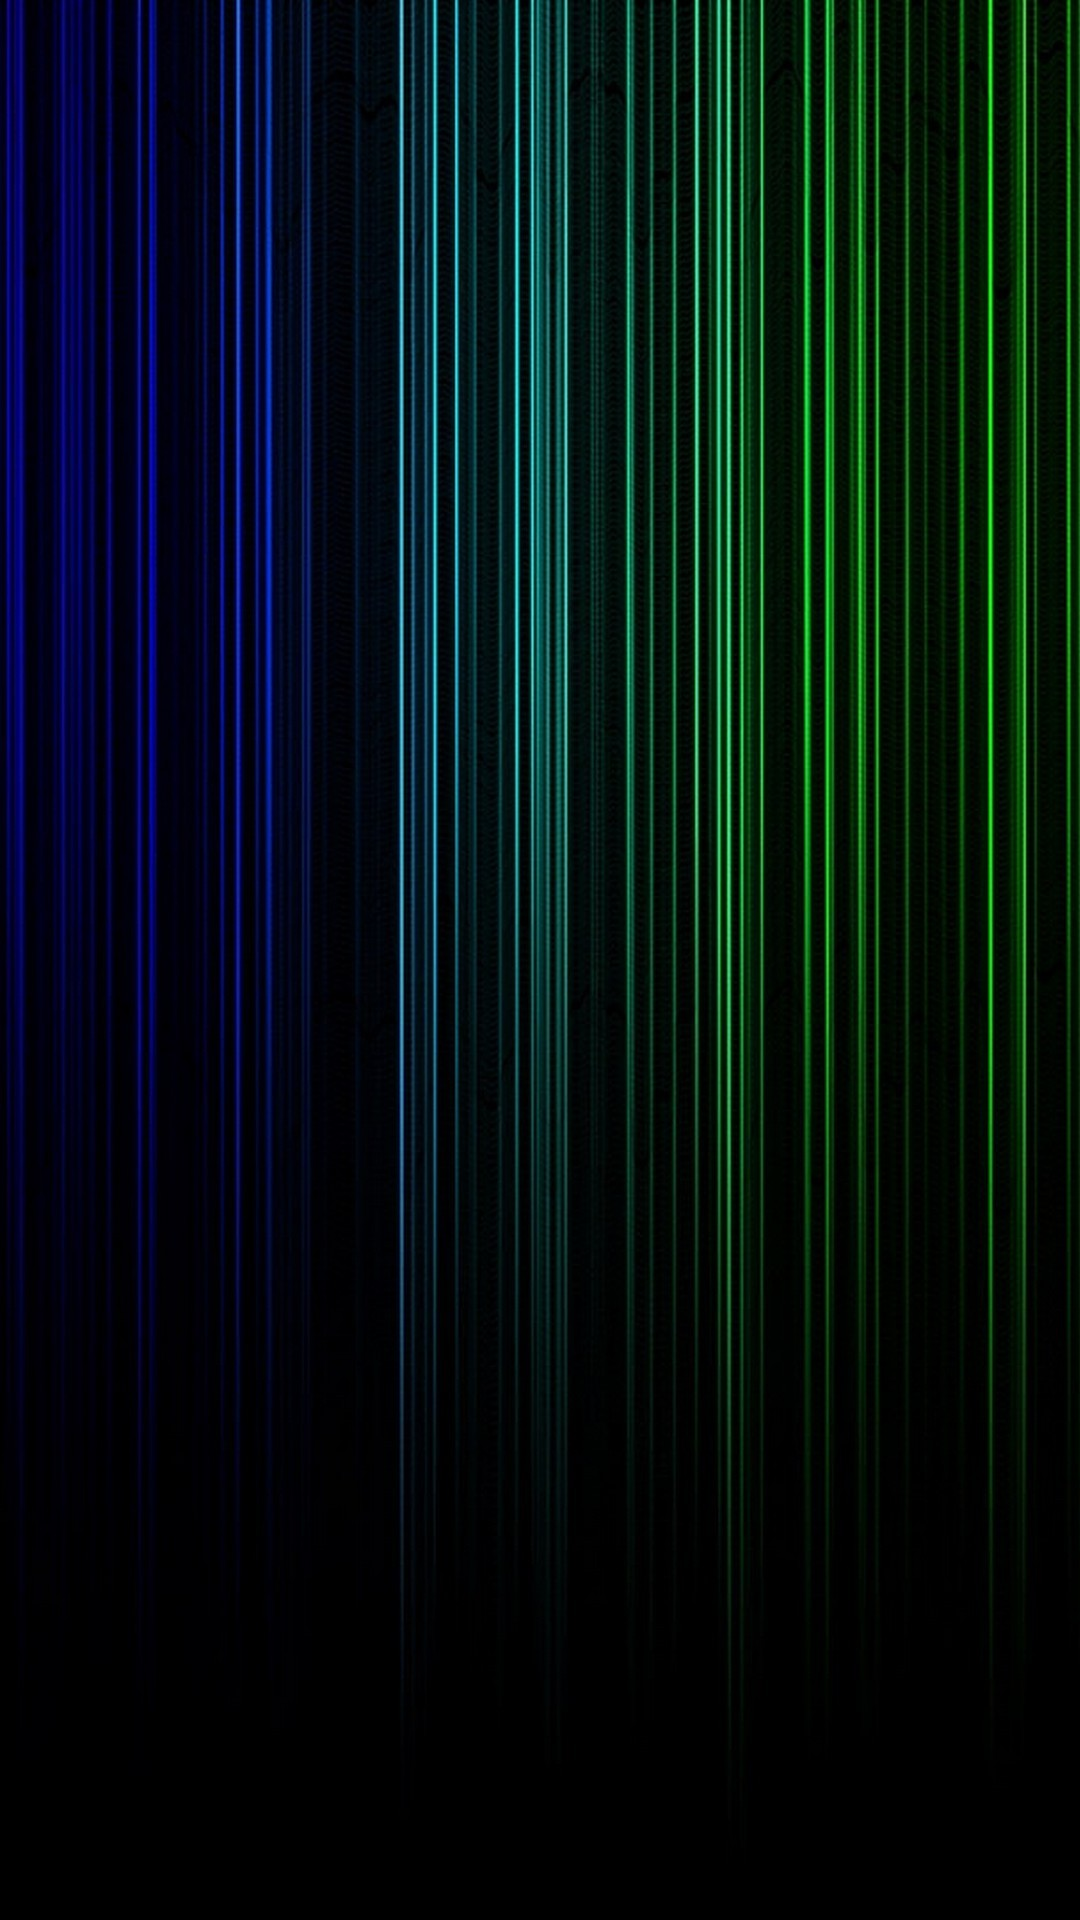 1080x1920 Rainbow Colors iPhone Wallpaper with image resolution  pixel. You  can make this wallpaper for